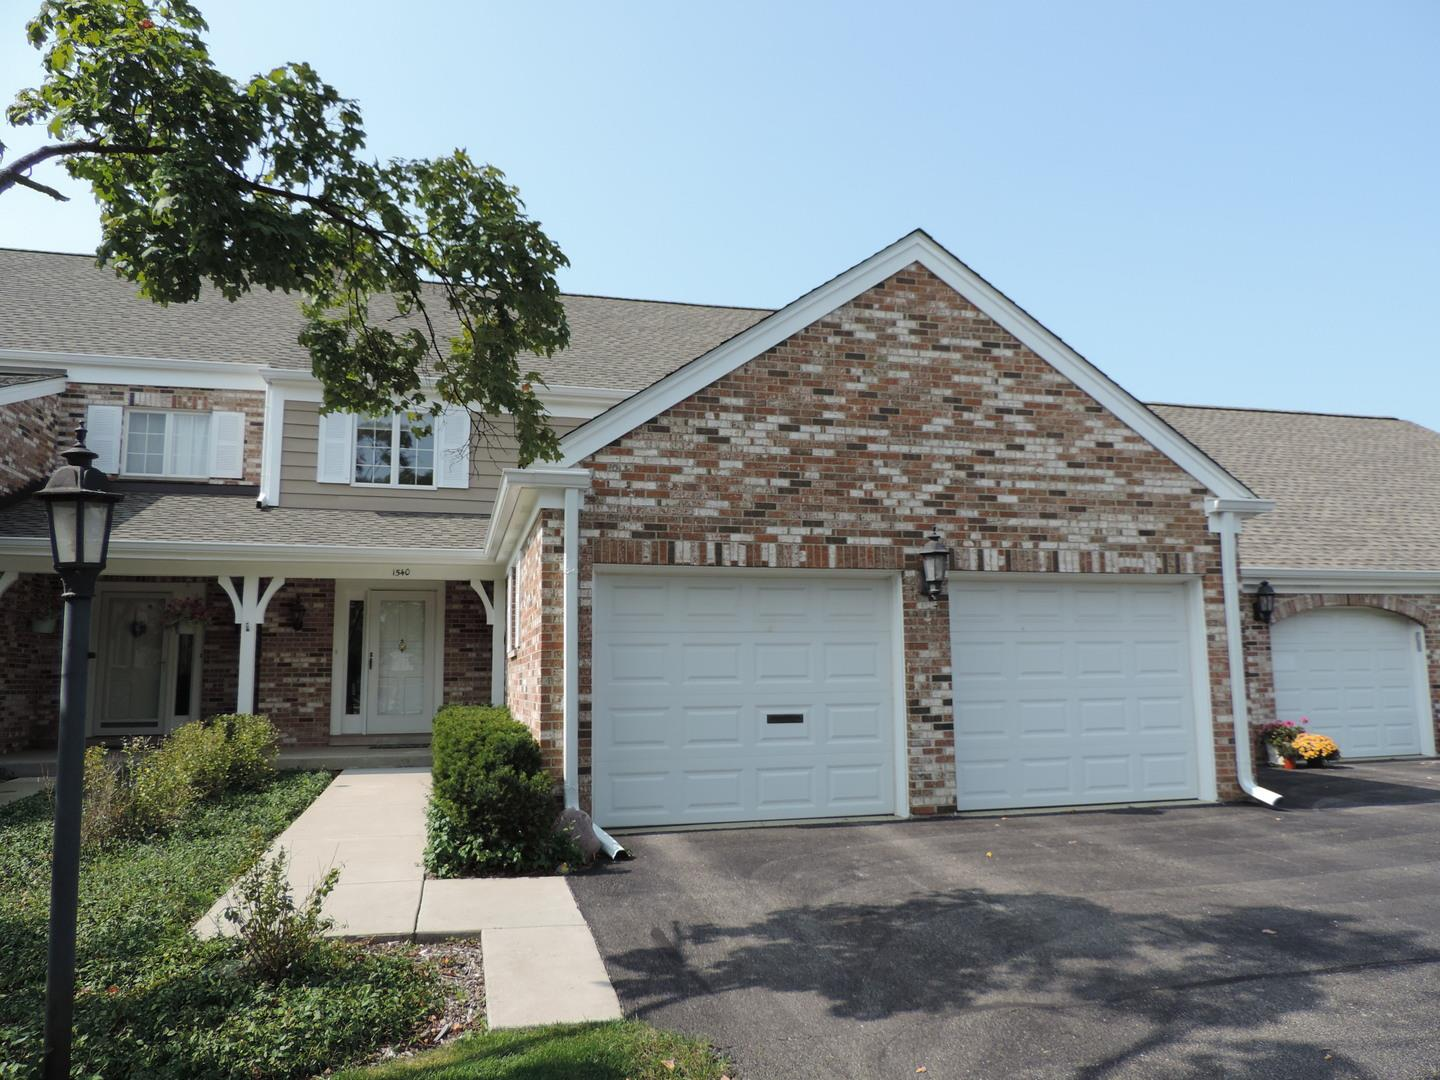 1540 SHIRE Circle #115, Inverness, IL 60067 - #: 10967838